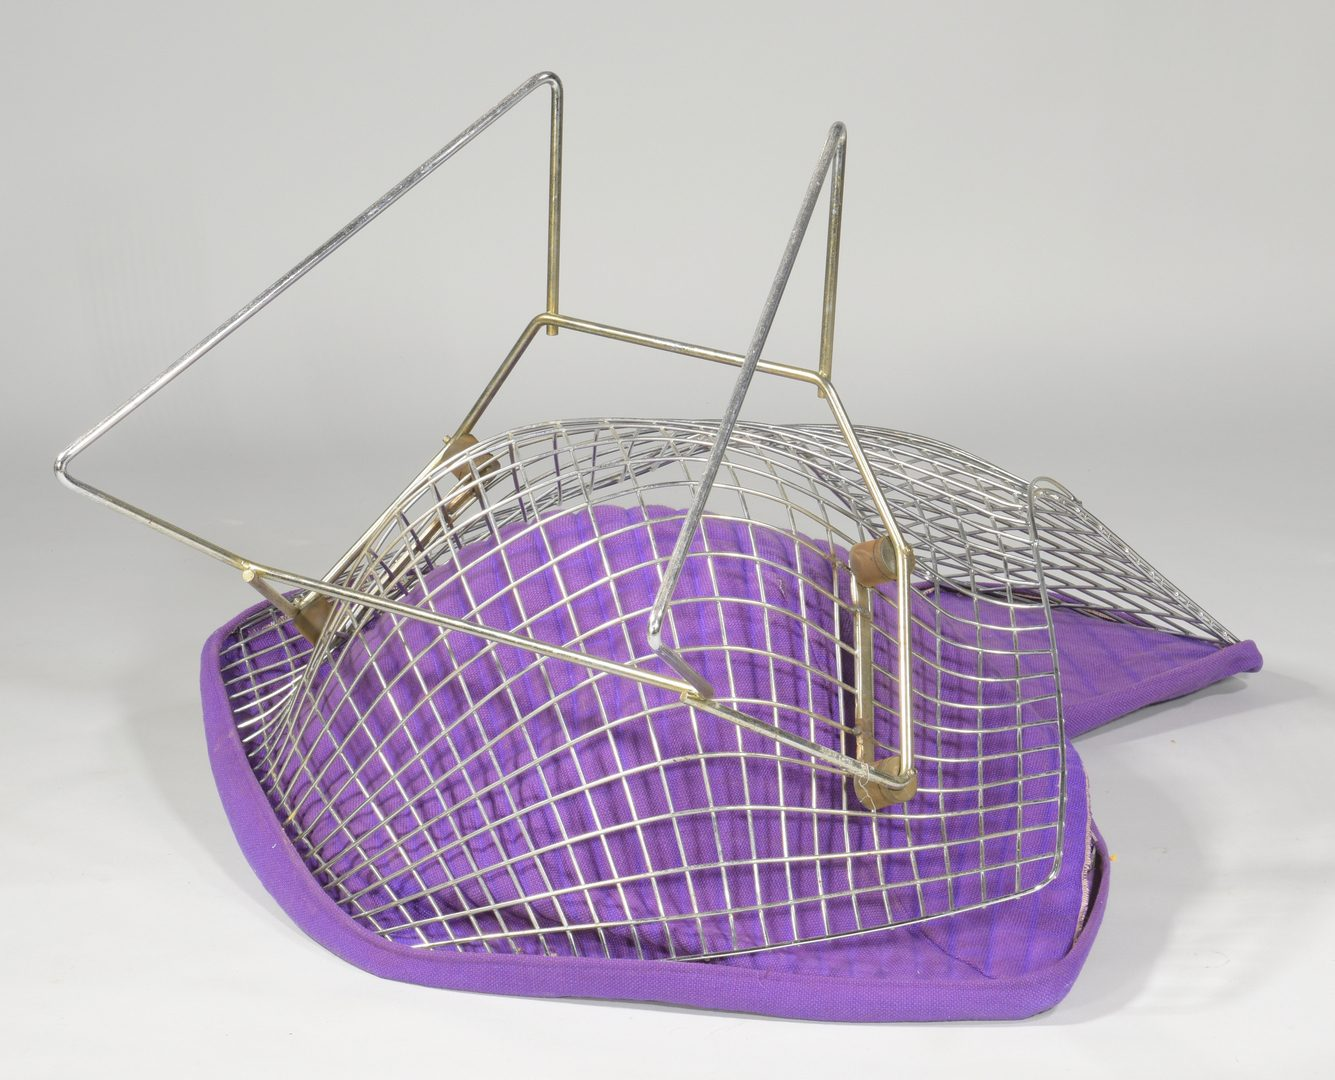 Lot 487: Harry Bertoia Knoll Bird Chair, labeled